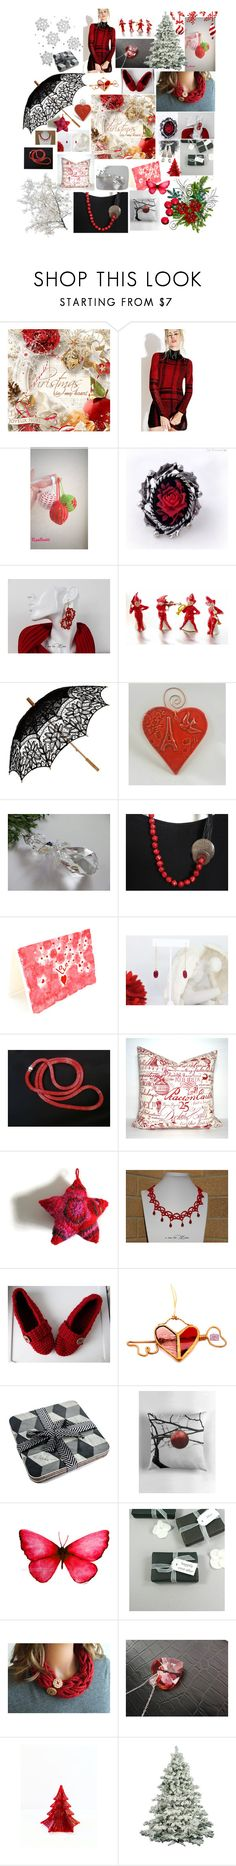 """Holiday Gift Ideas"" by monique-eves ❤ liked on Polyvore featuring interior, interiors, interior design, home, home decor, interior decorating, Tripp, Lumière, Remedios and Chilli Pepper"